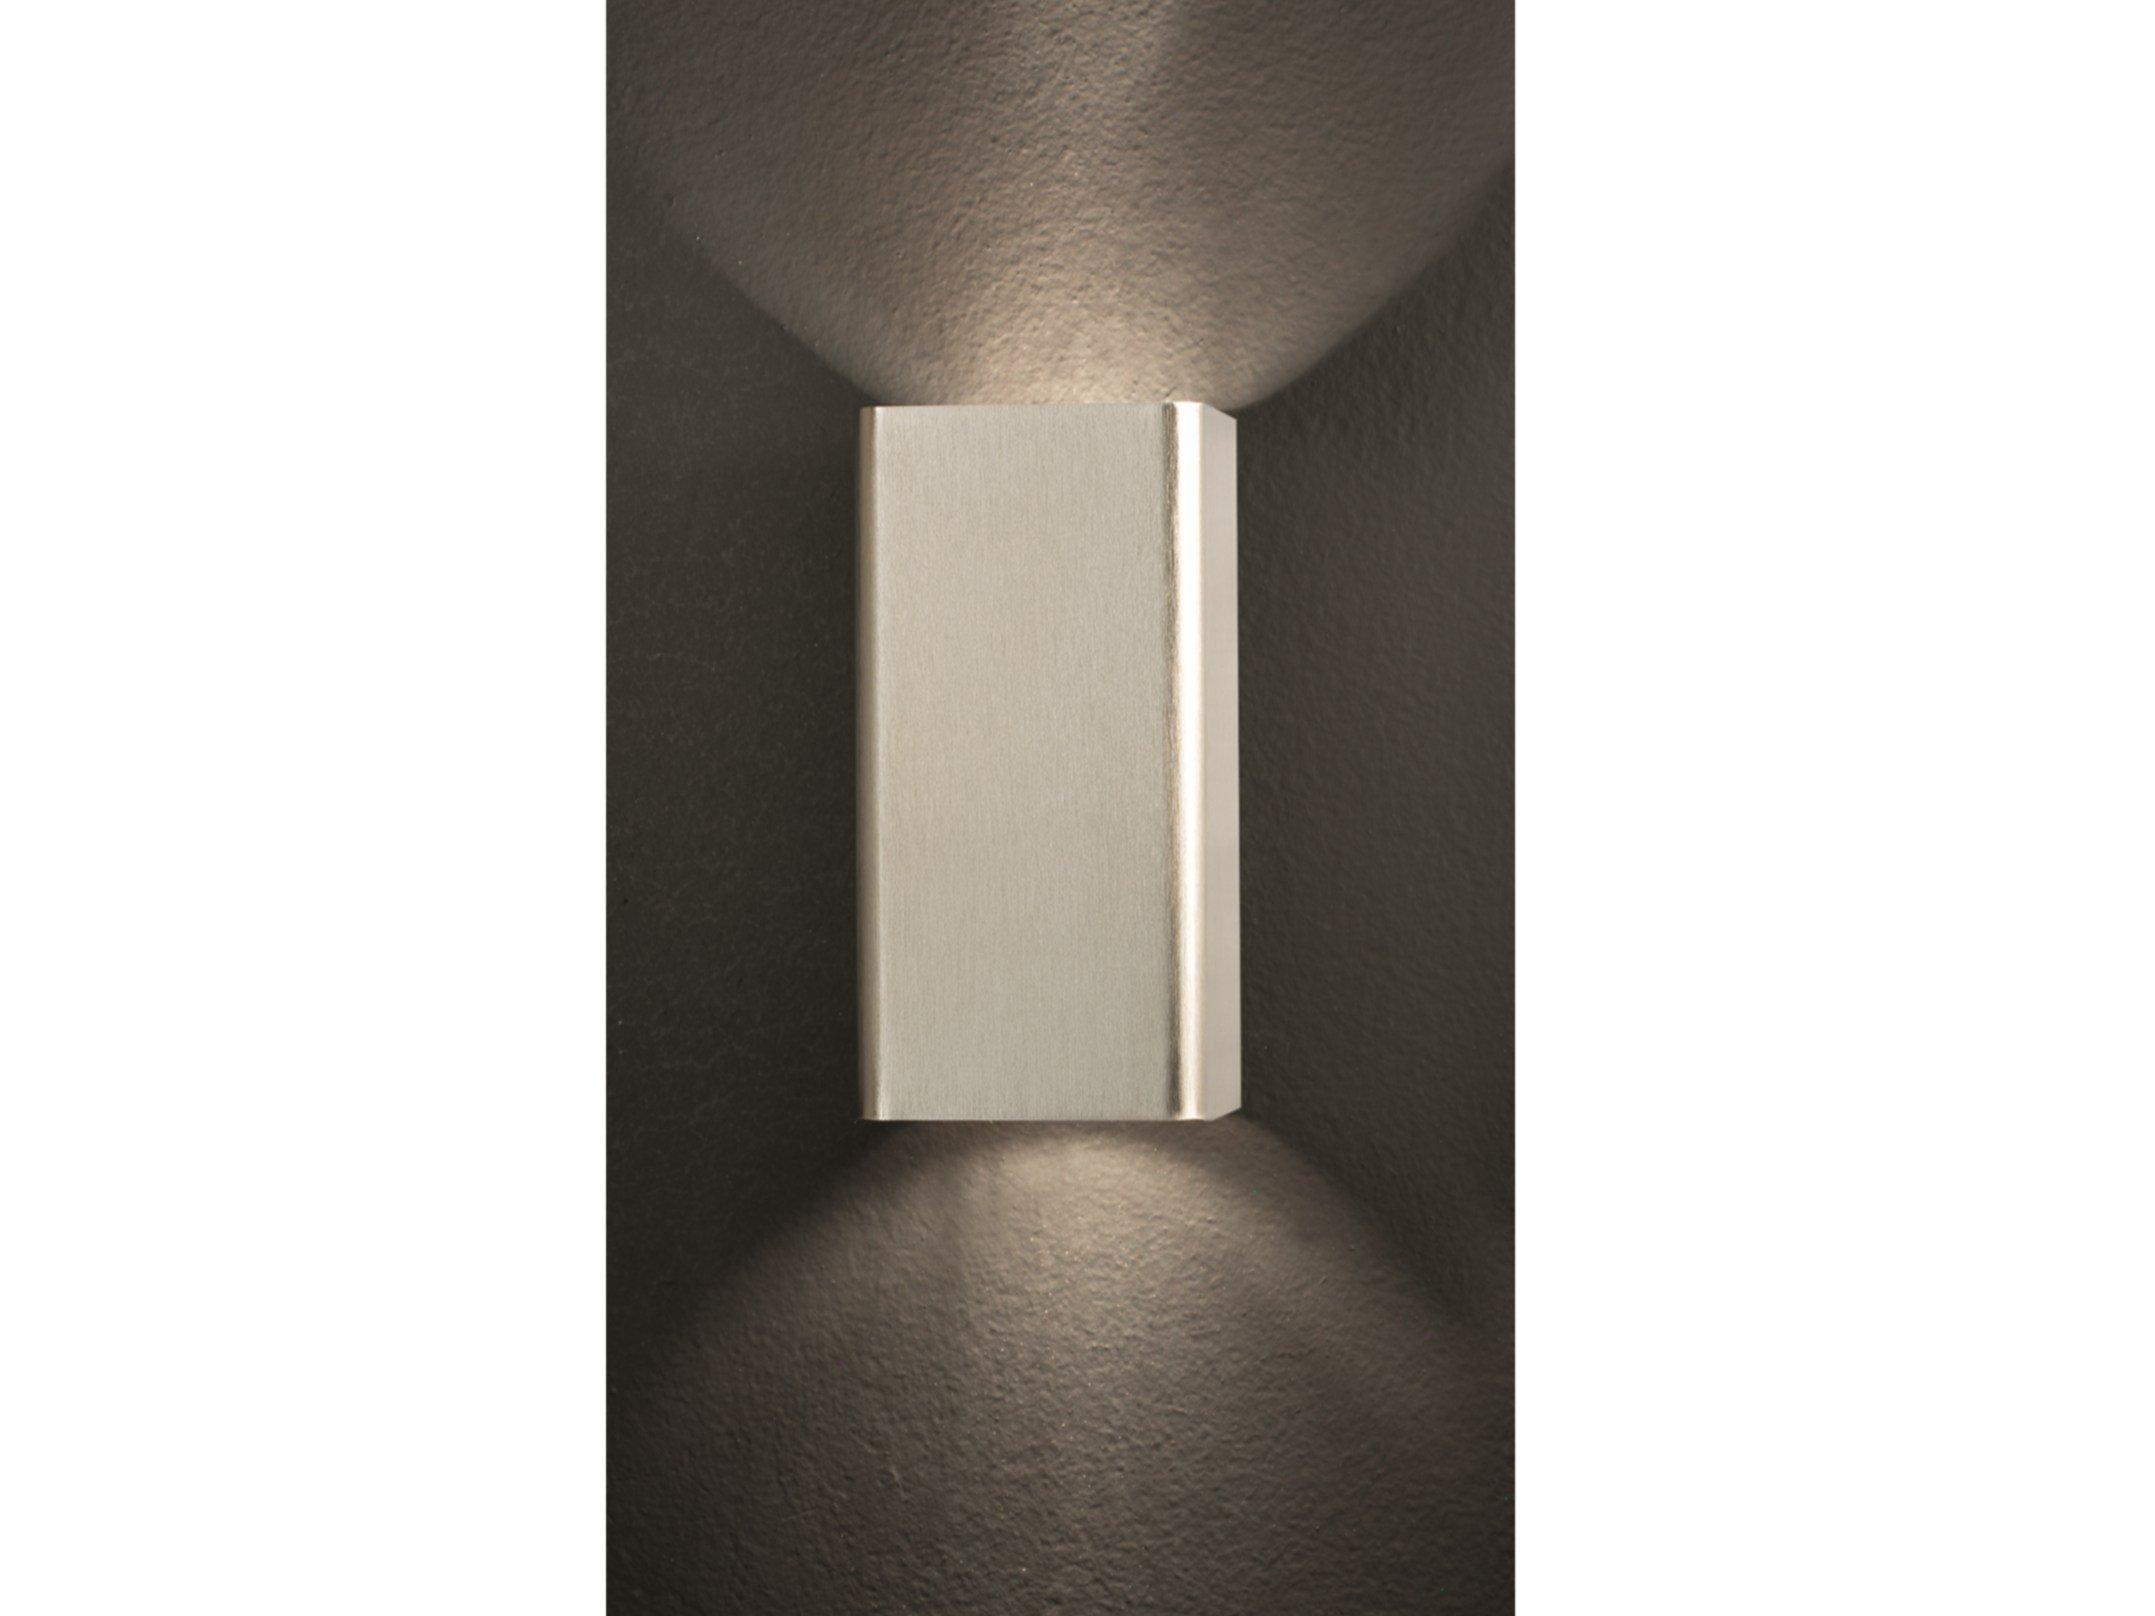 Products by Lucente Wall | Archiproducts